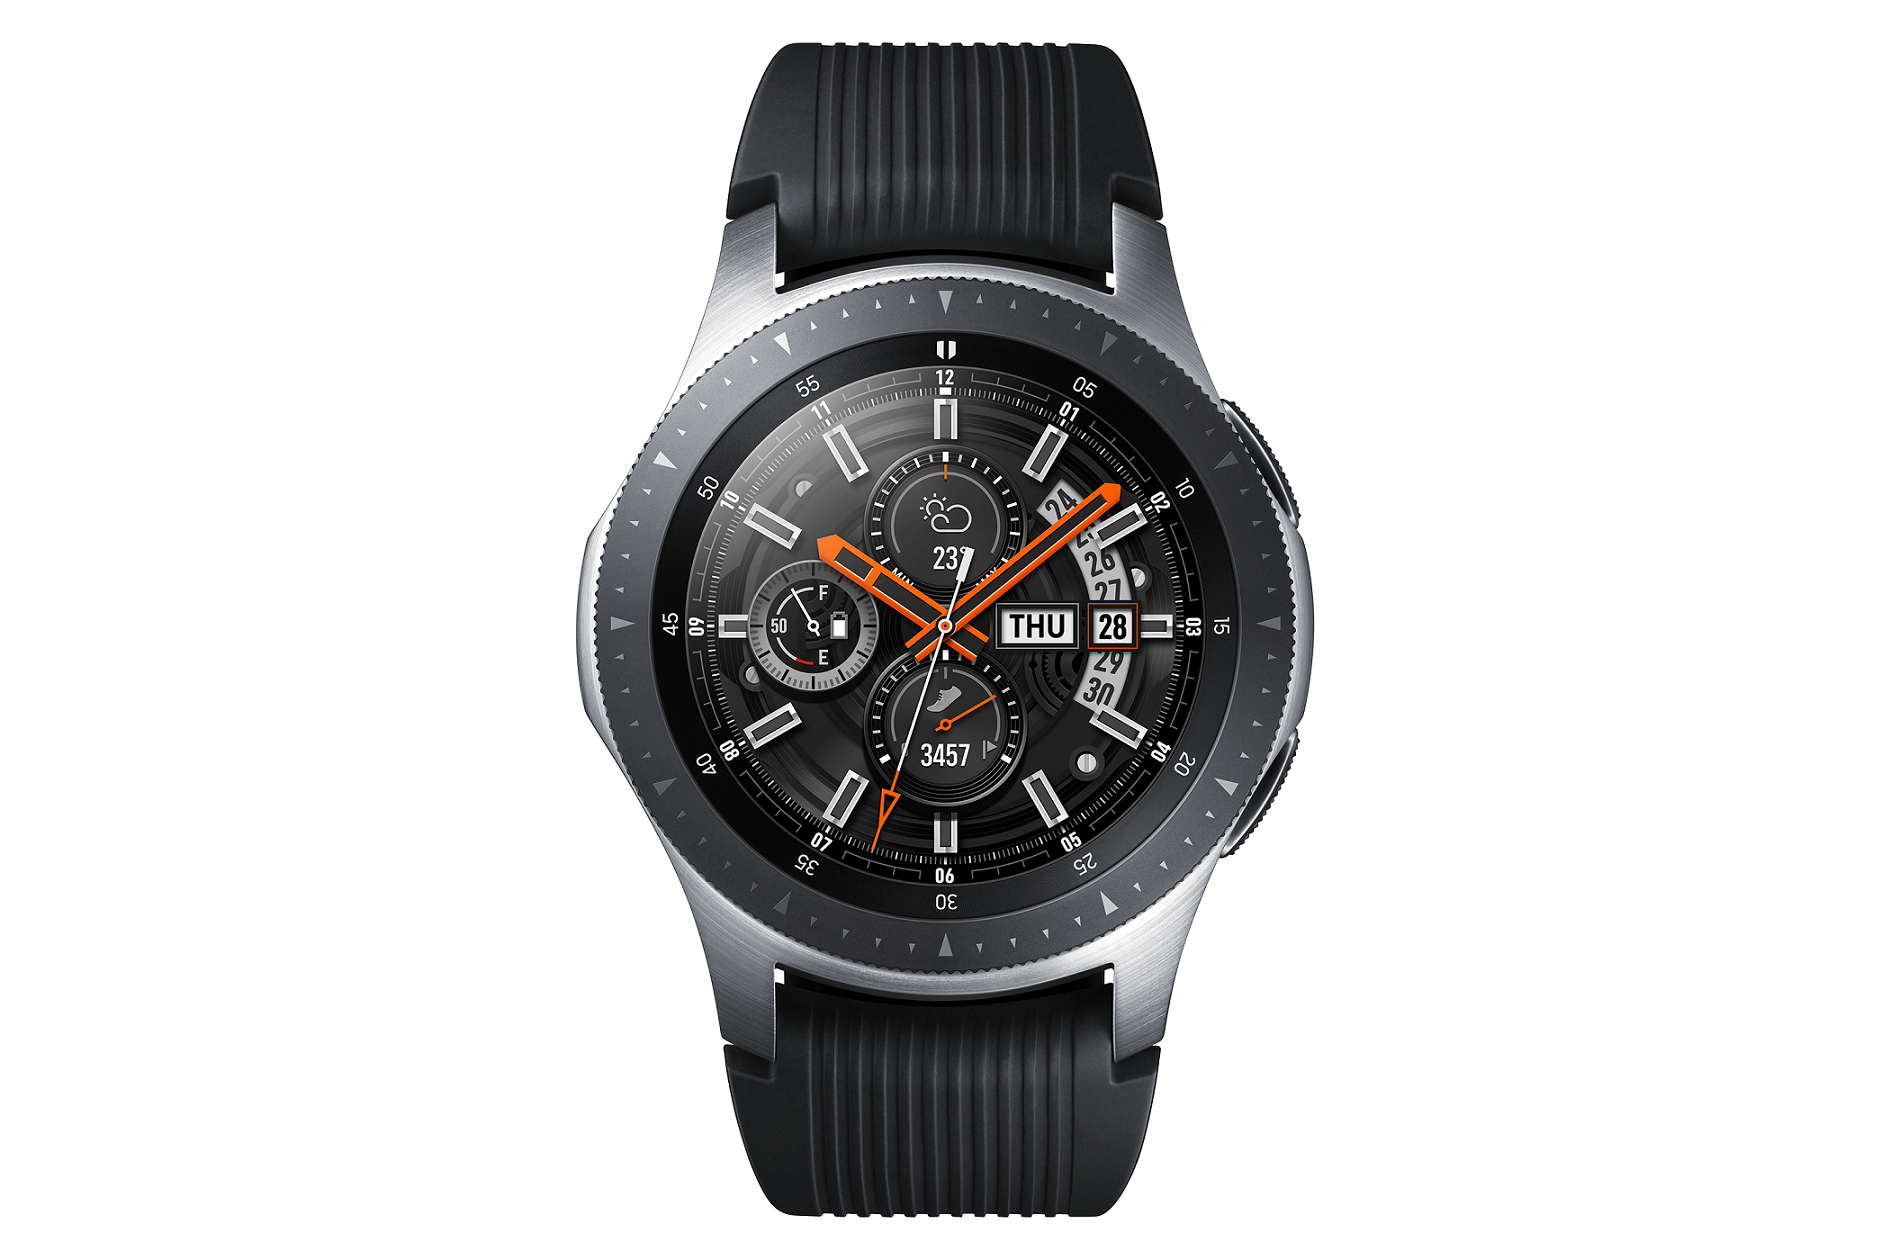 Samsung Galaxy Watch Named Best Wearable Mobile Technology